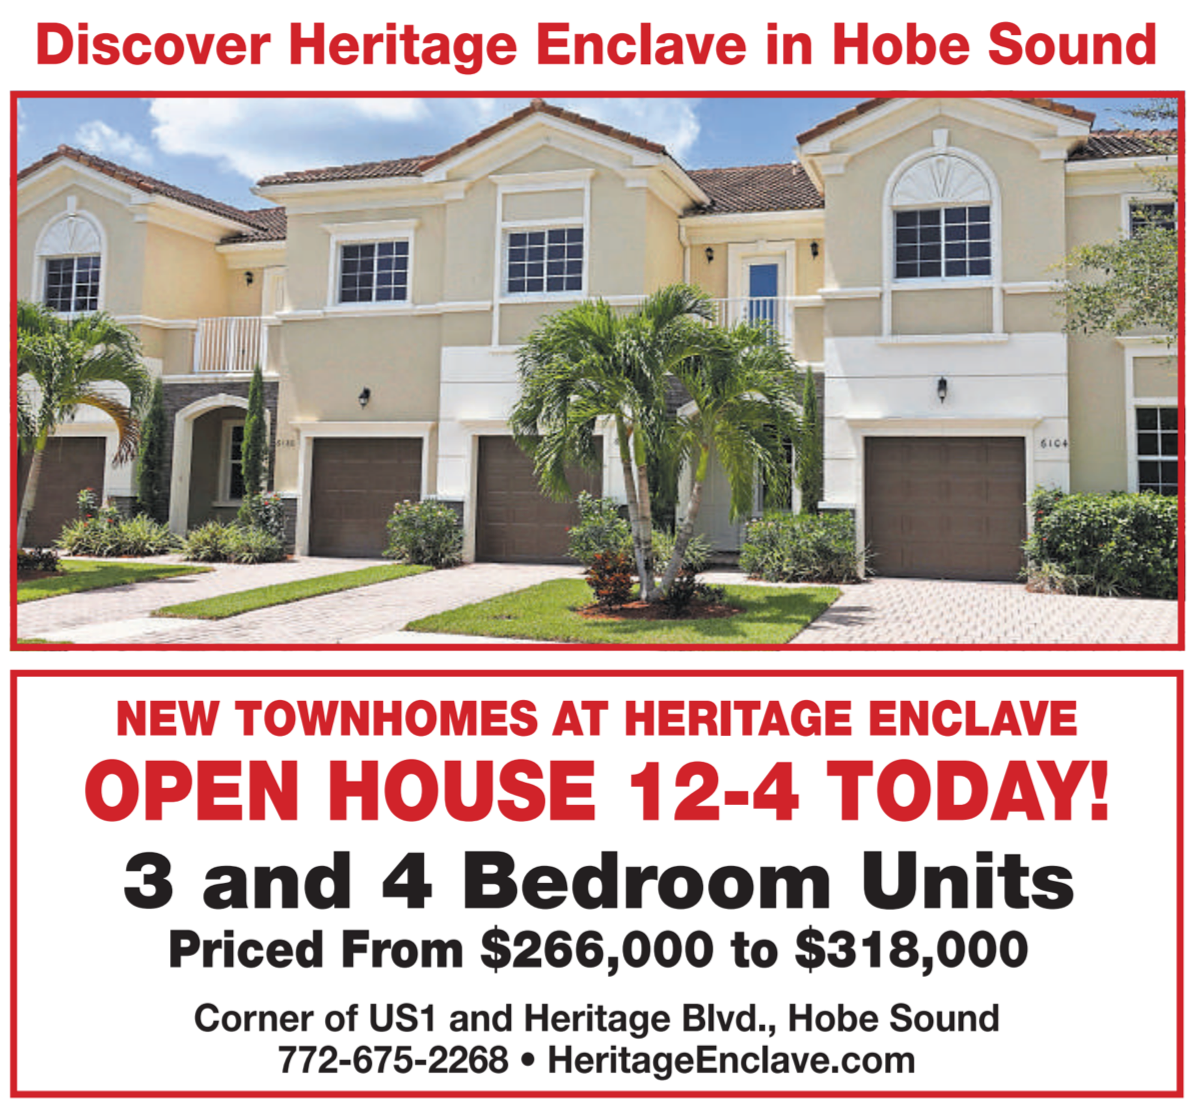 Heritage Enclave Townhomes at heritage ridge, Hobe Sound